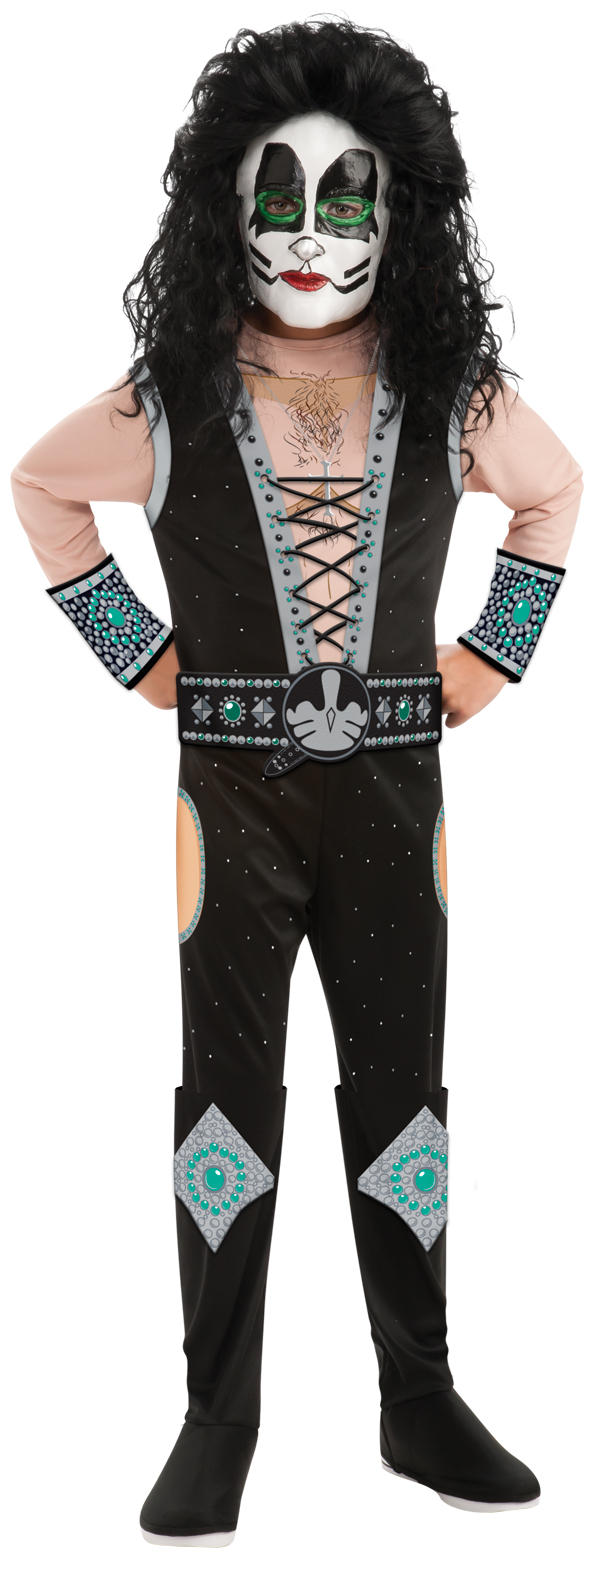 KISS - Catman Child Deluxe Costume S, M, L